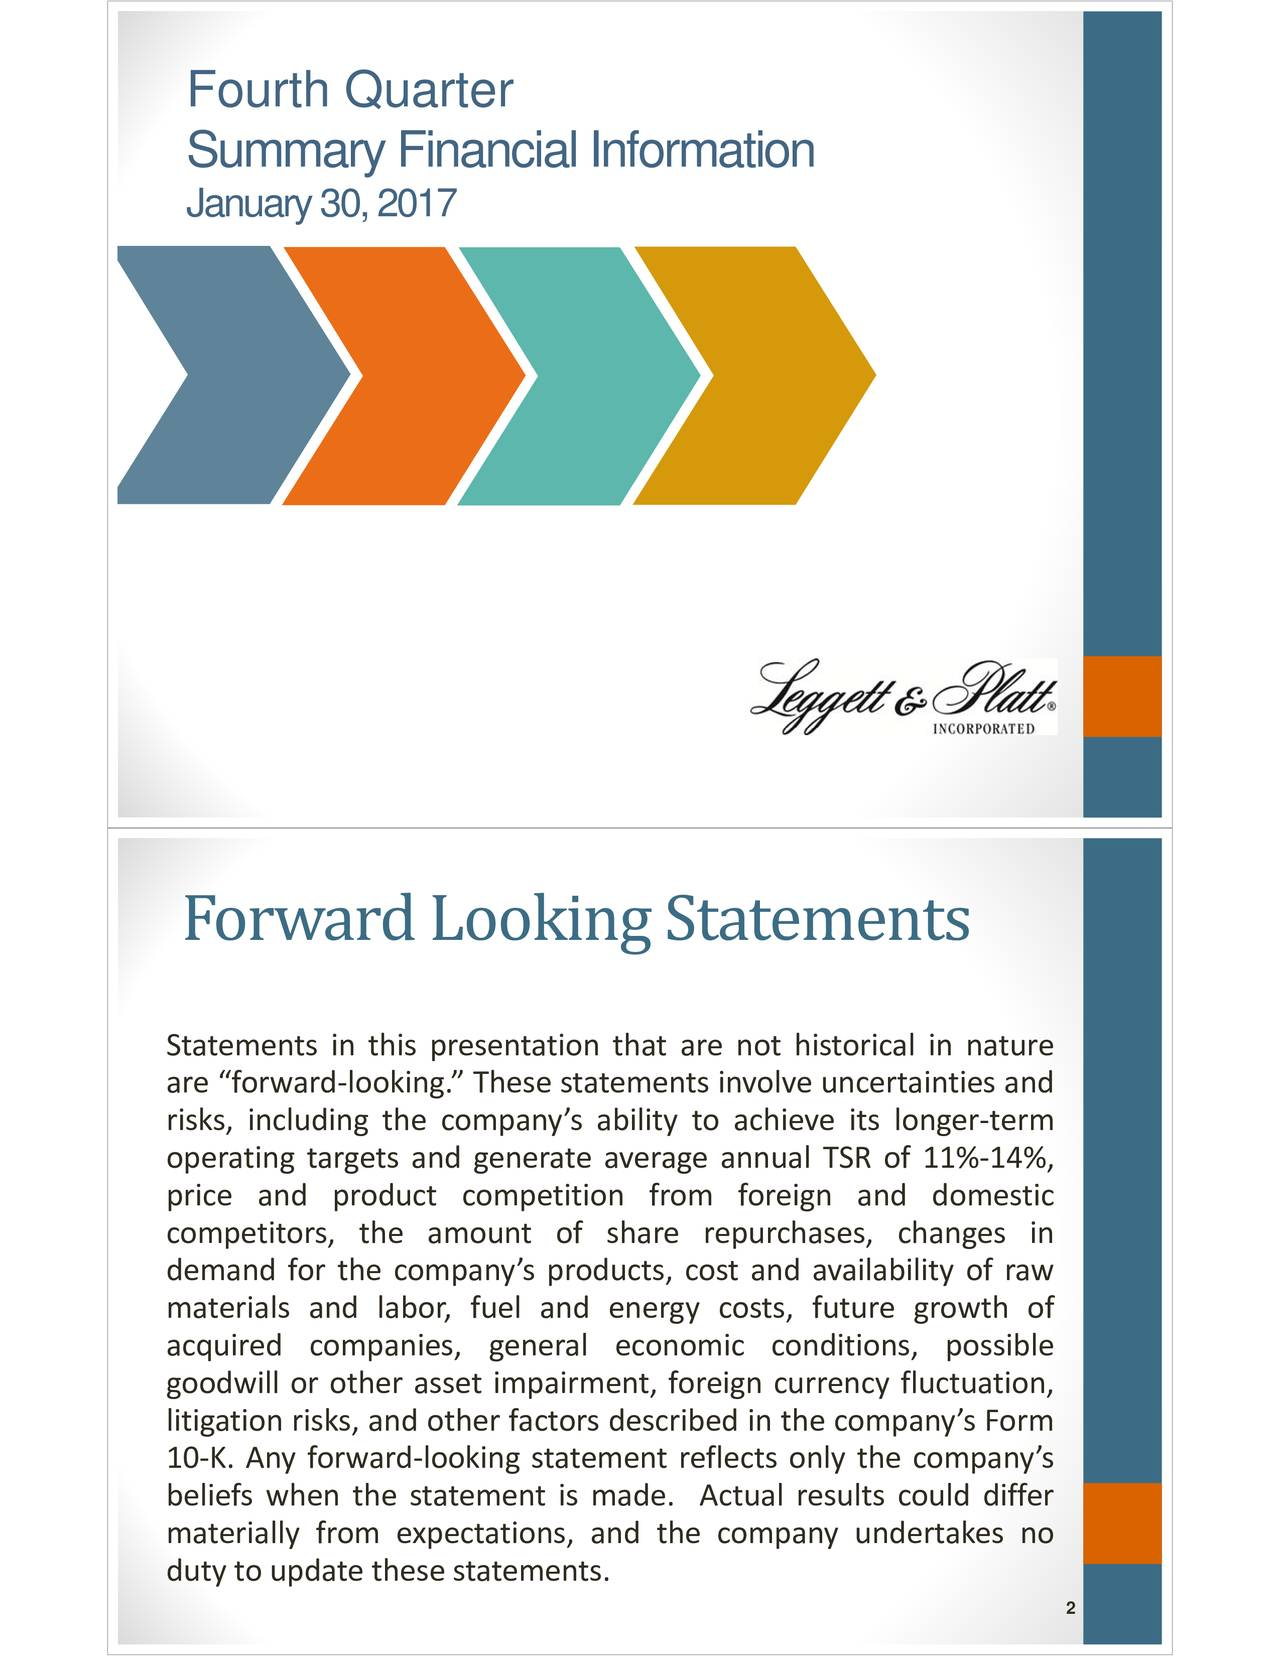 Summary Financial Information January 30, 2017 Forward Looking Statements Statements in this presentation that are not historical in nature are forwardlooking. These statements involve uncertainties and risks, including the companys ability to achieve its longerterm operating targets and generate average annual TSR of 11%14%, price and product competition from foreign and domestic competitors, the amount of share repurchases, changes in demand for the companys products, cost and availability of raw materials and labor, fuel and energy costs, future growth of acquired companies, general economic conditions, possible goodwill or other asset impairment, foreign currency fluctuation, litigation risks, and other factors described in the companys Form 10K. Any forwardlooking statement reflects only the companys beliefs when the statement is made. Actual results could differ materially from expectations, and the company undertakes no duty to update these statements. 2